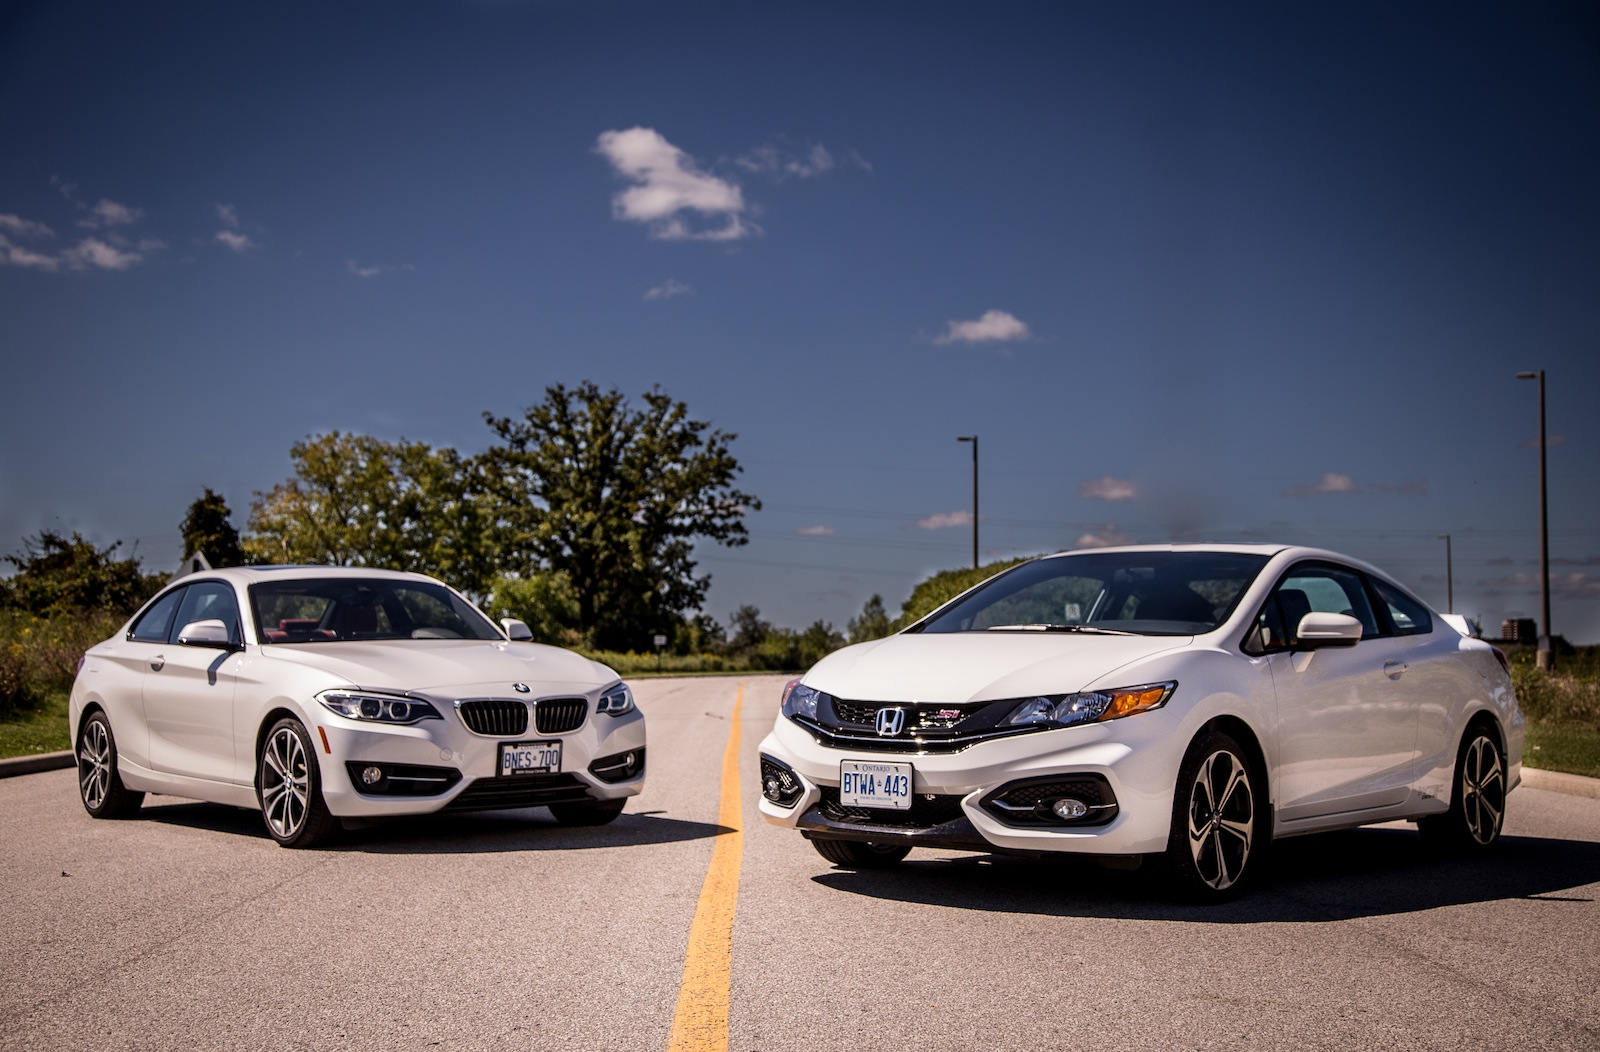 2014 bmw 228i vs 2014 honda civic si coupe   comparison   cars photos test drives and